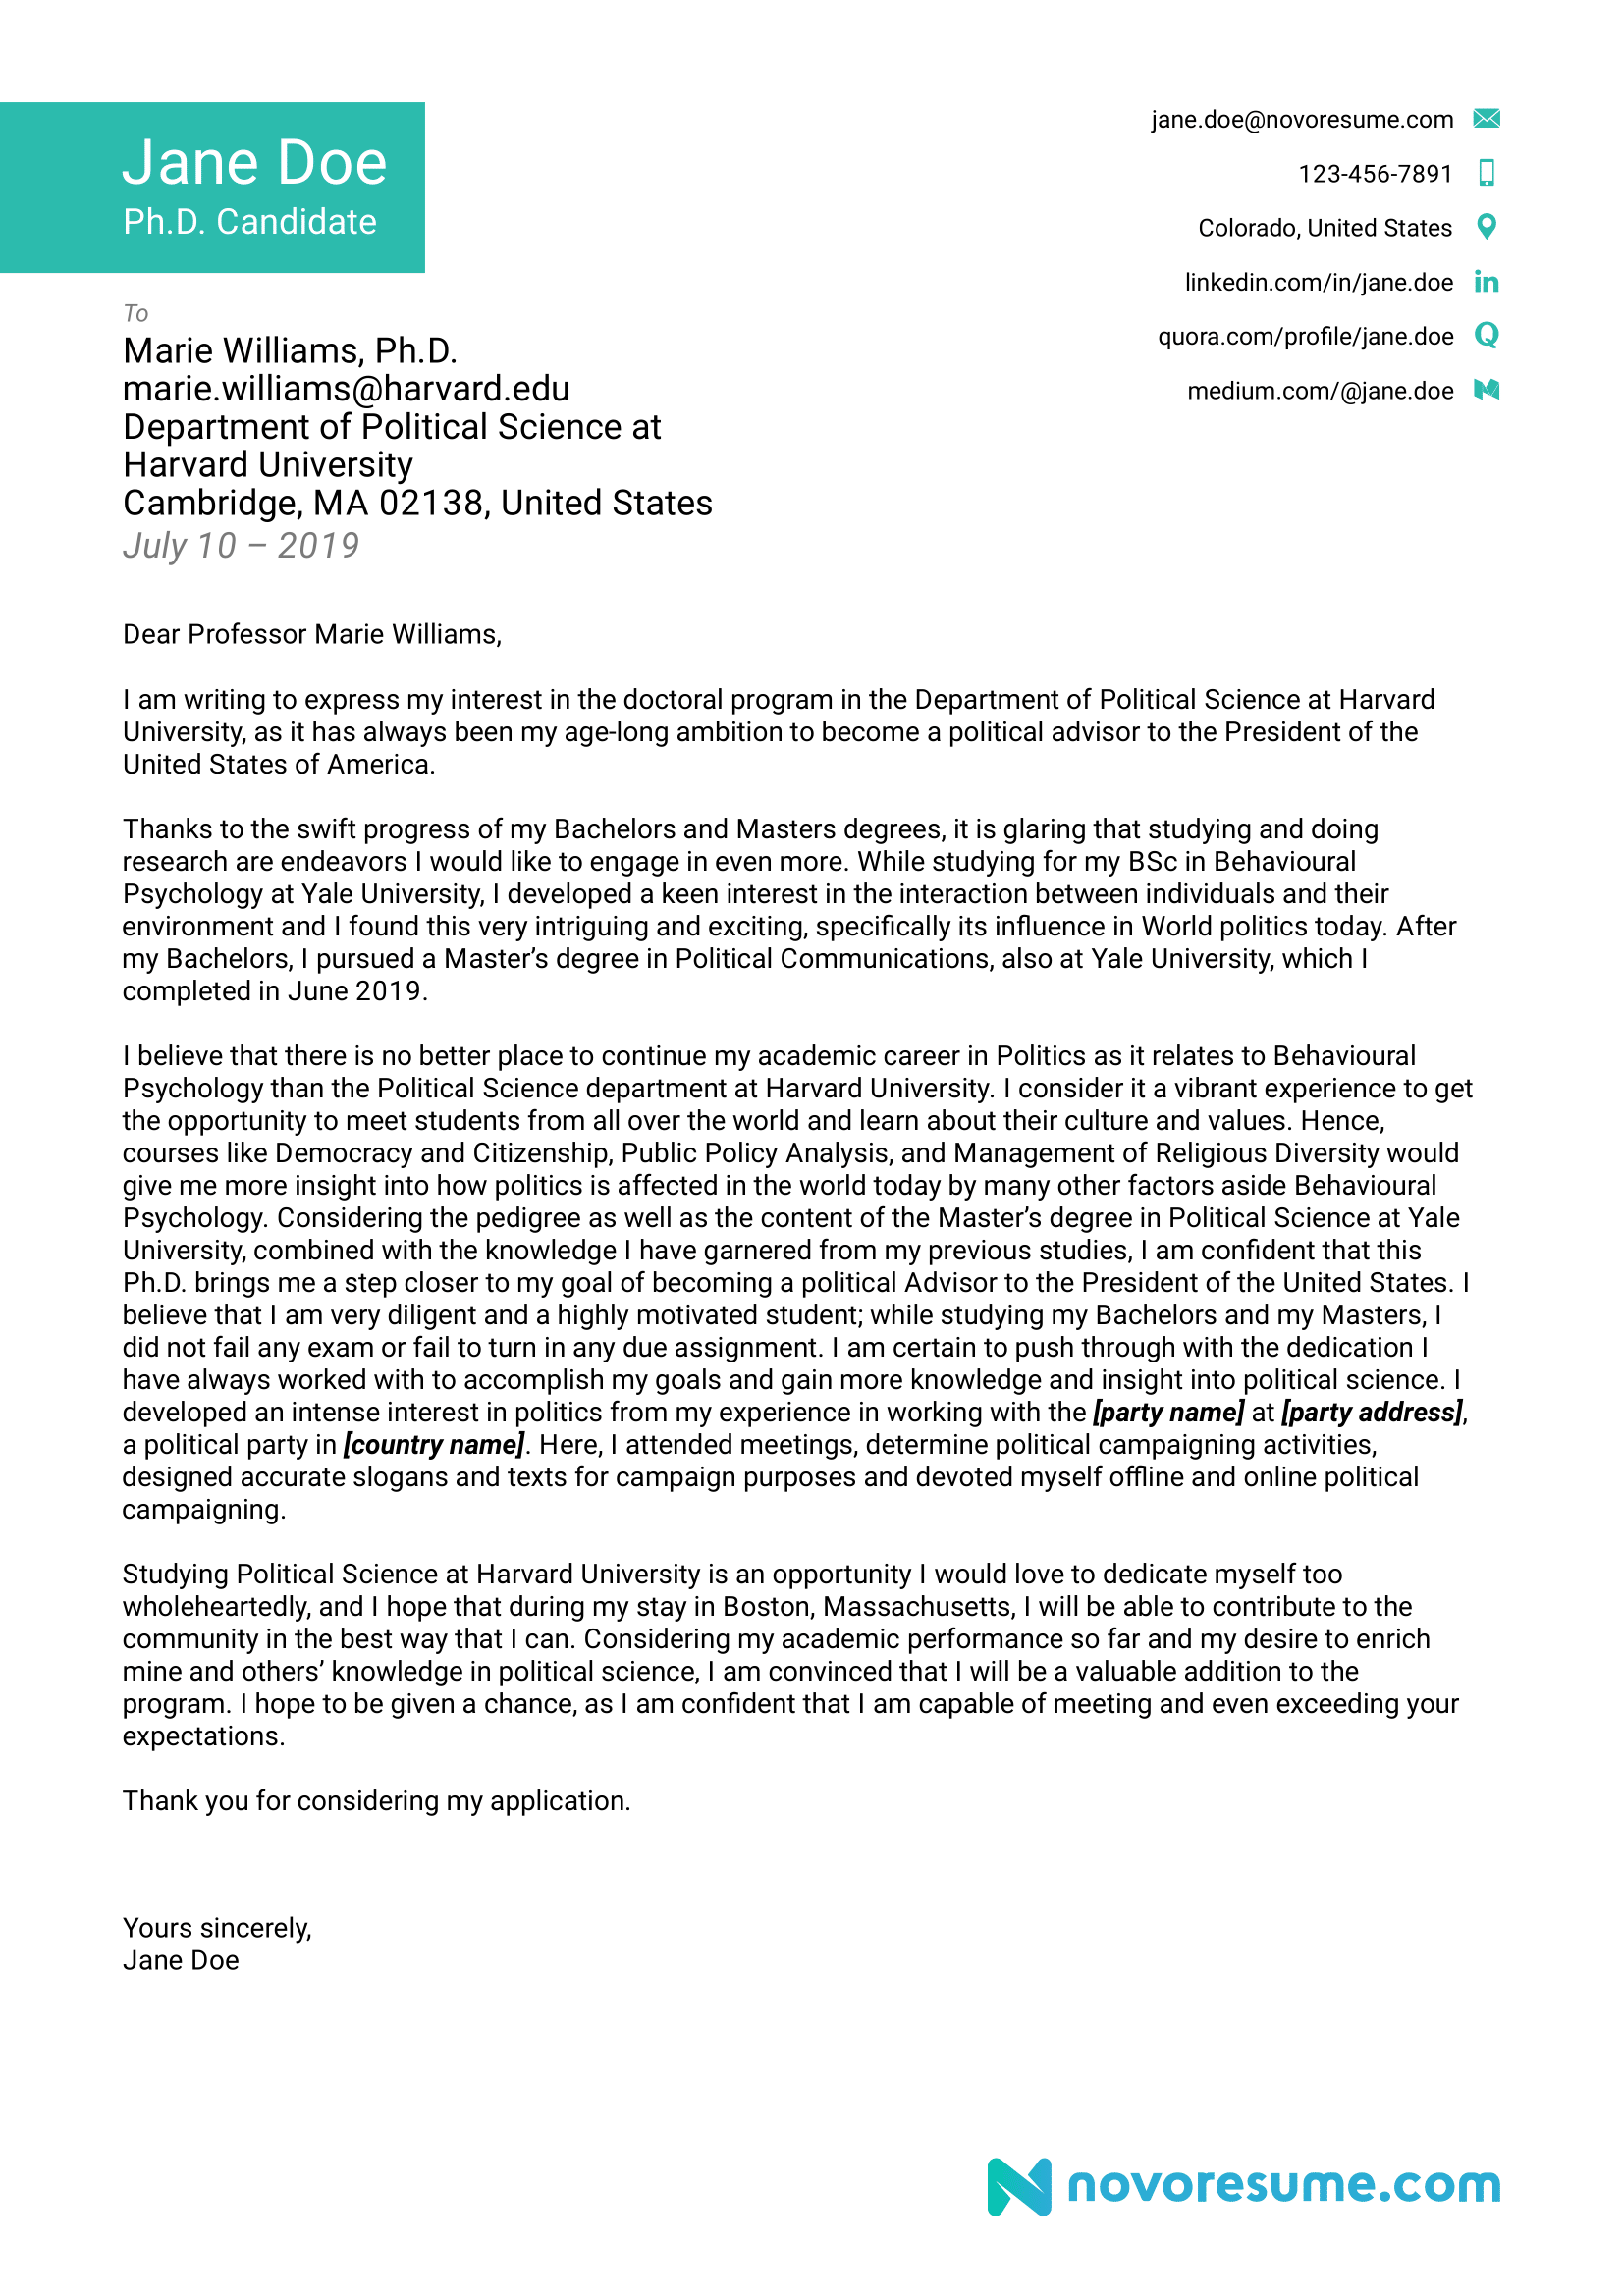 out of area school application letter sample